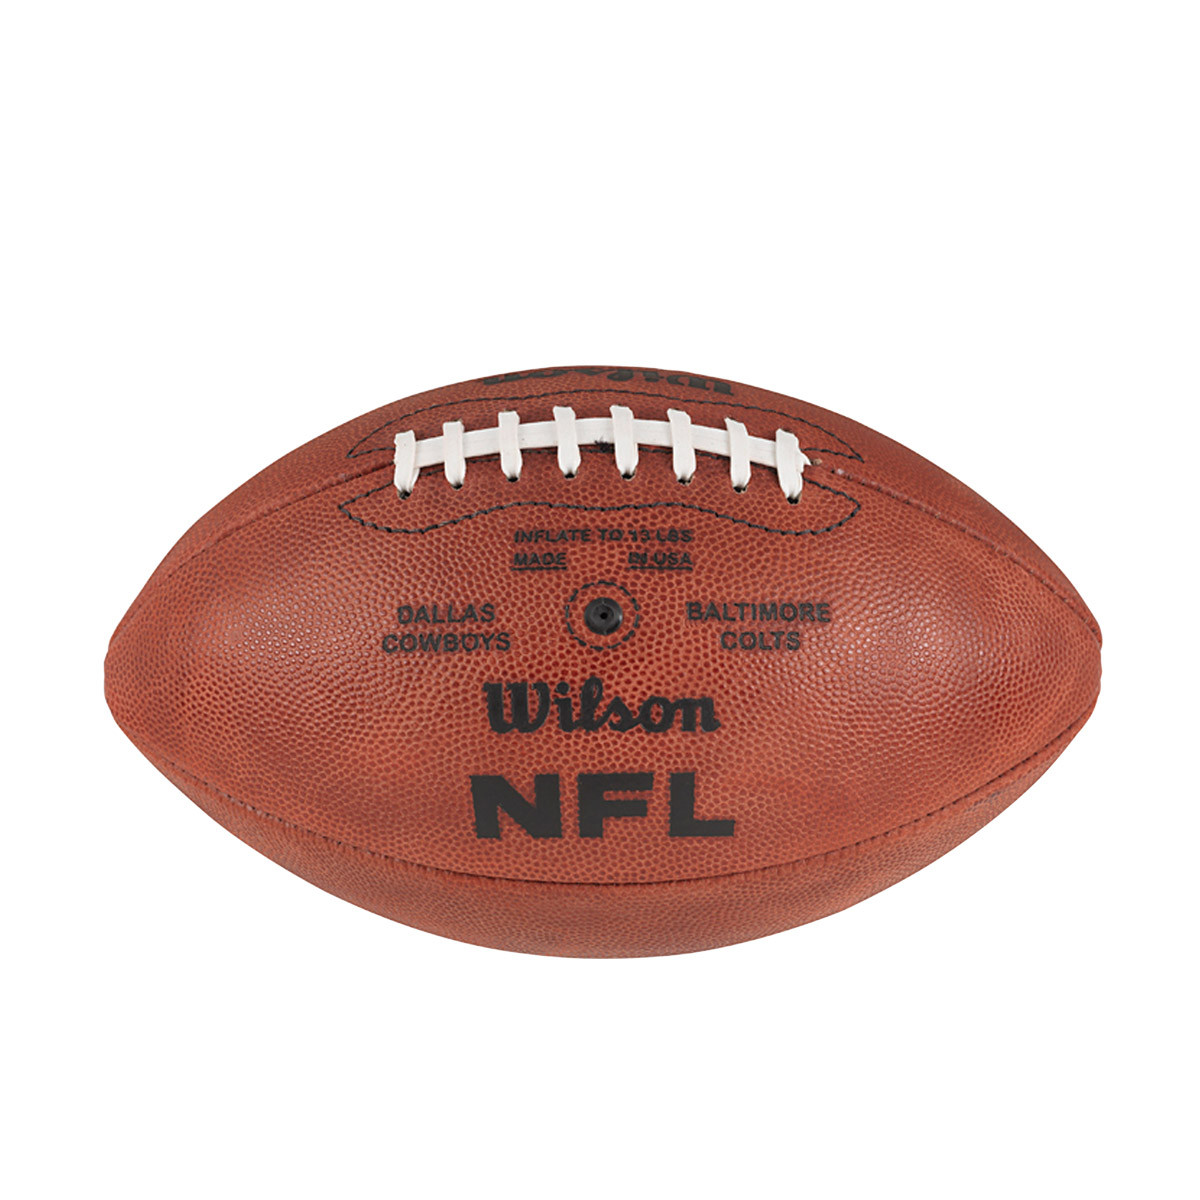 Super Bowl V Five 5 Official Leather Authentic Game Football By